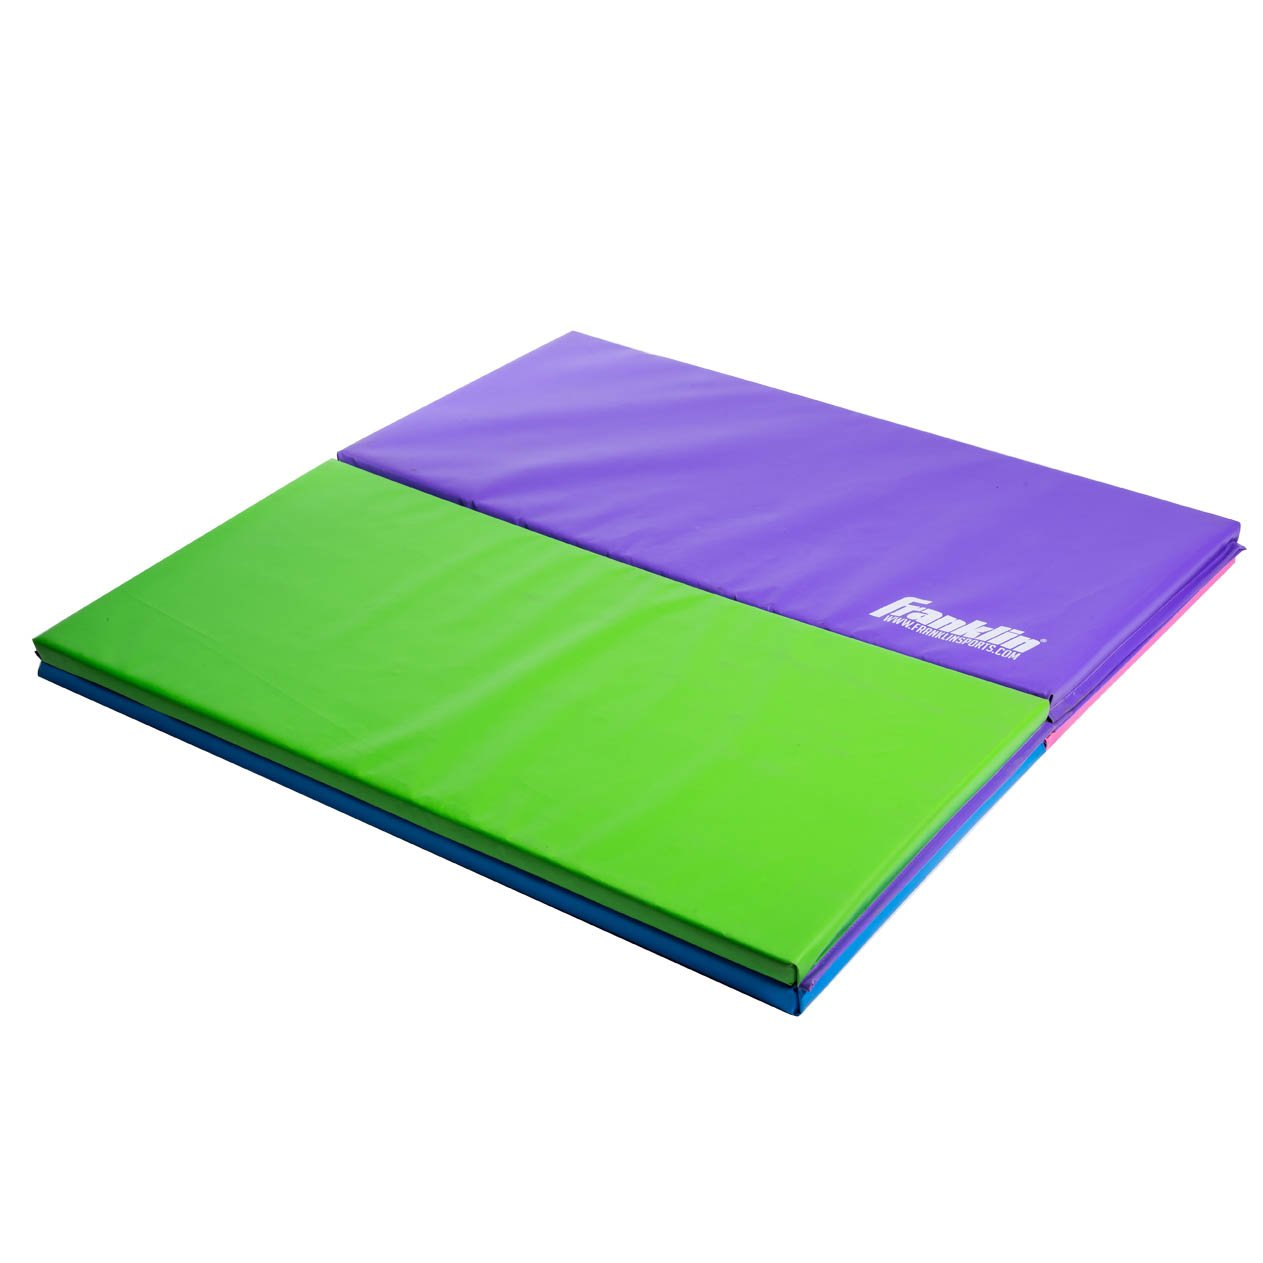 Amazon.com: Franklin Sports Folding Mat – Tumbling Mat and ...